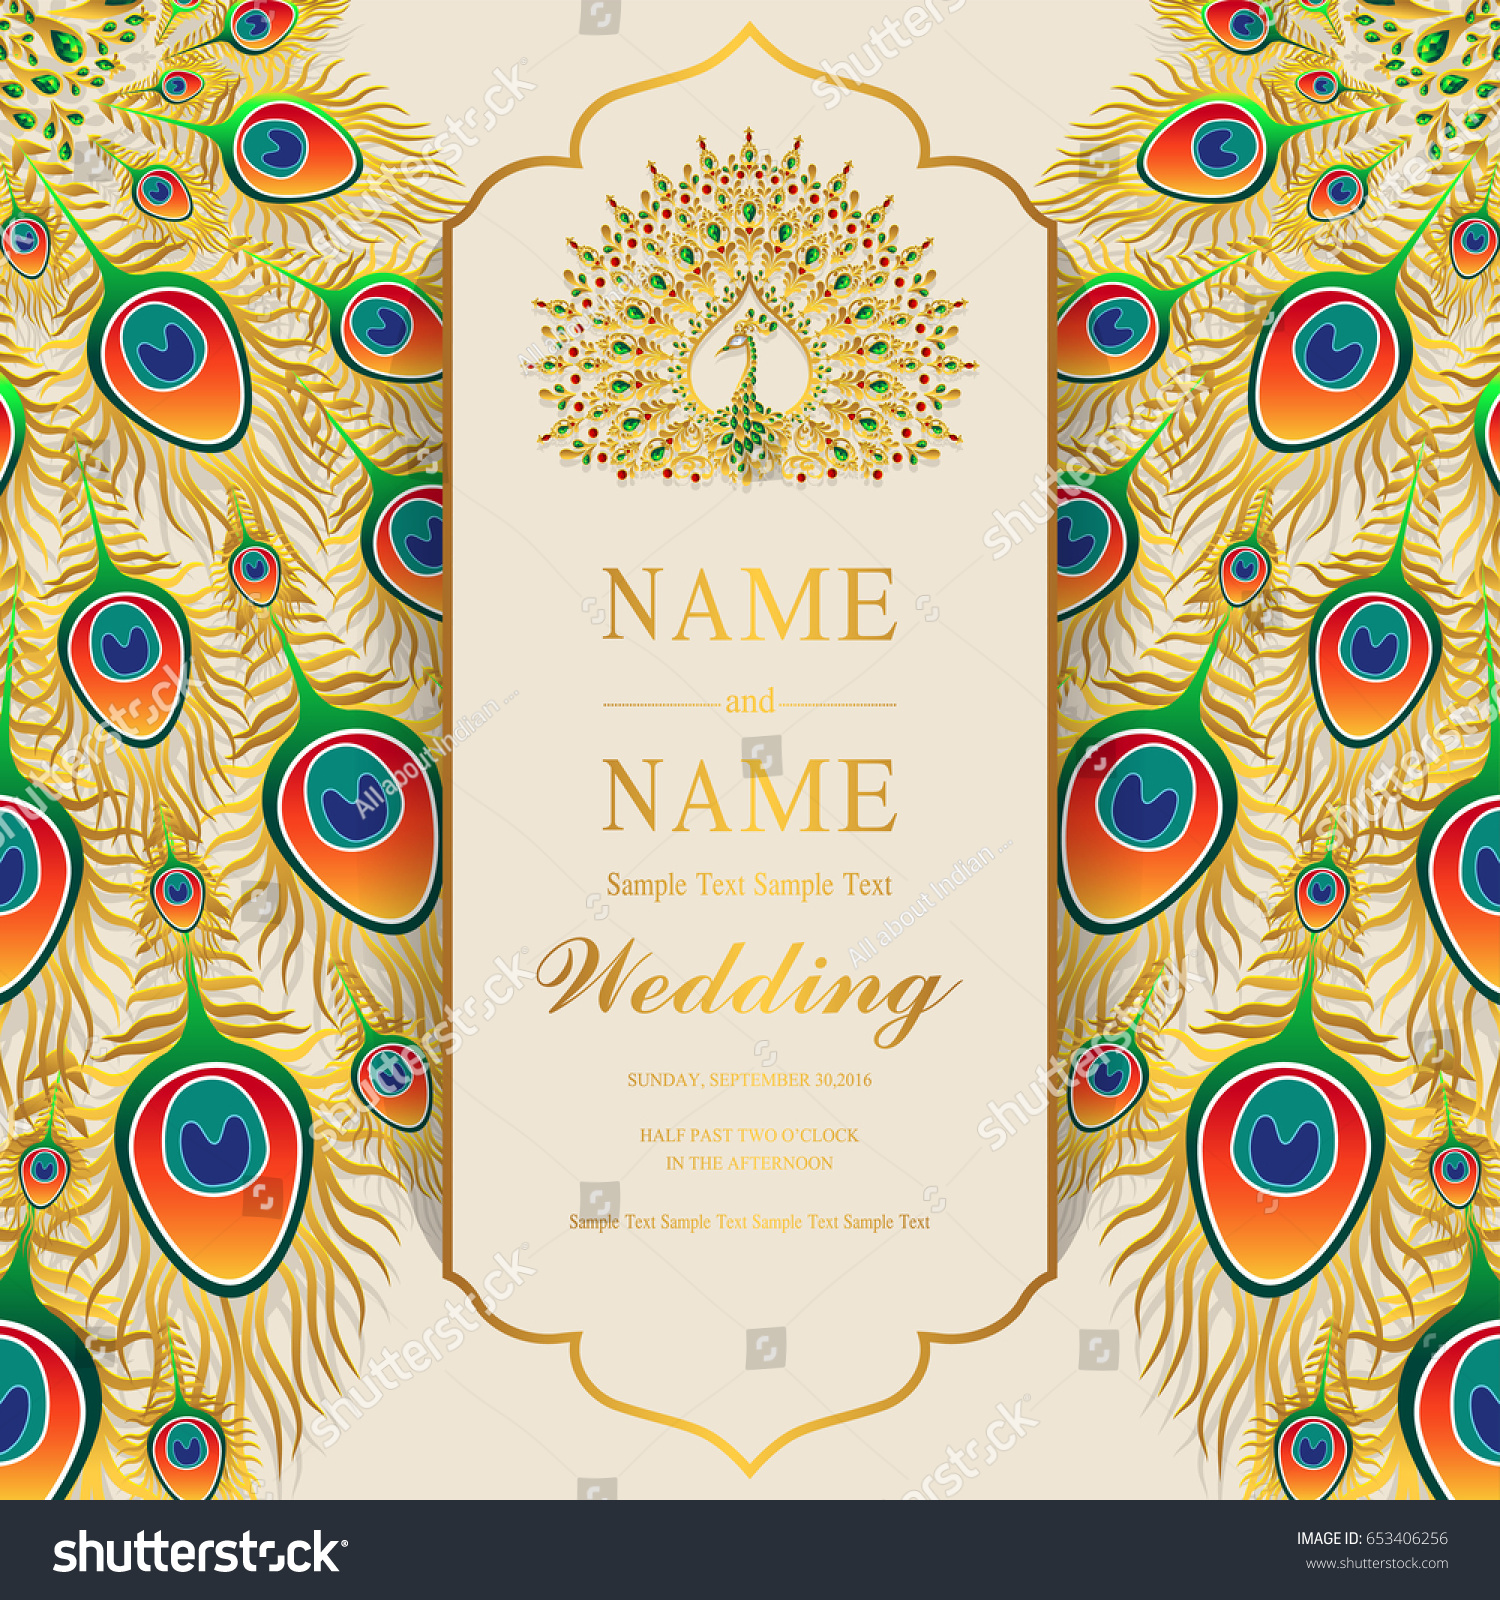 wedding invitation card templates with gold peacock feathers patterned and crystals on paper color